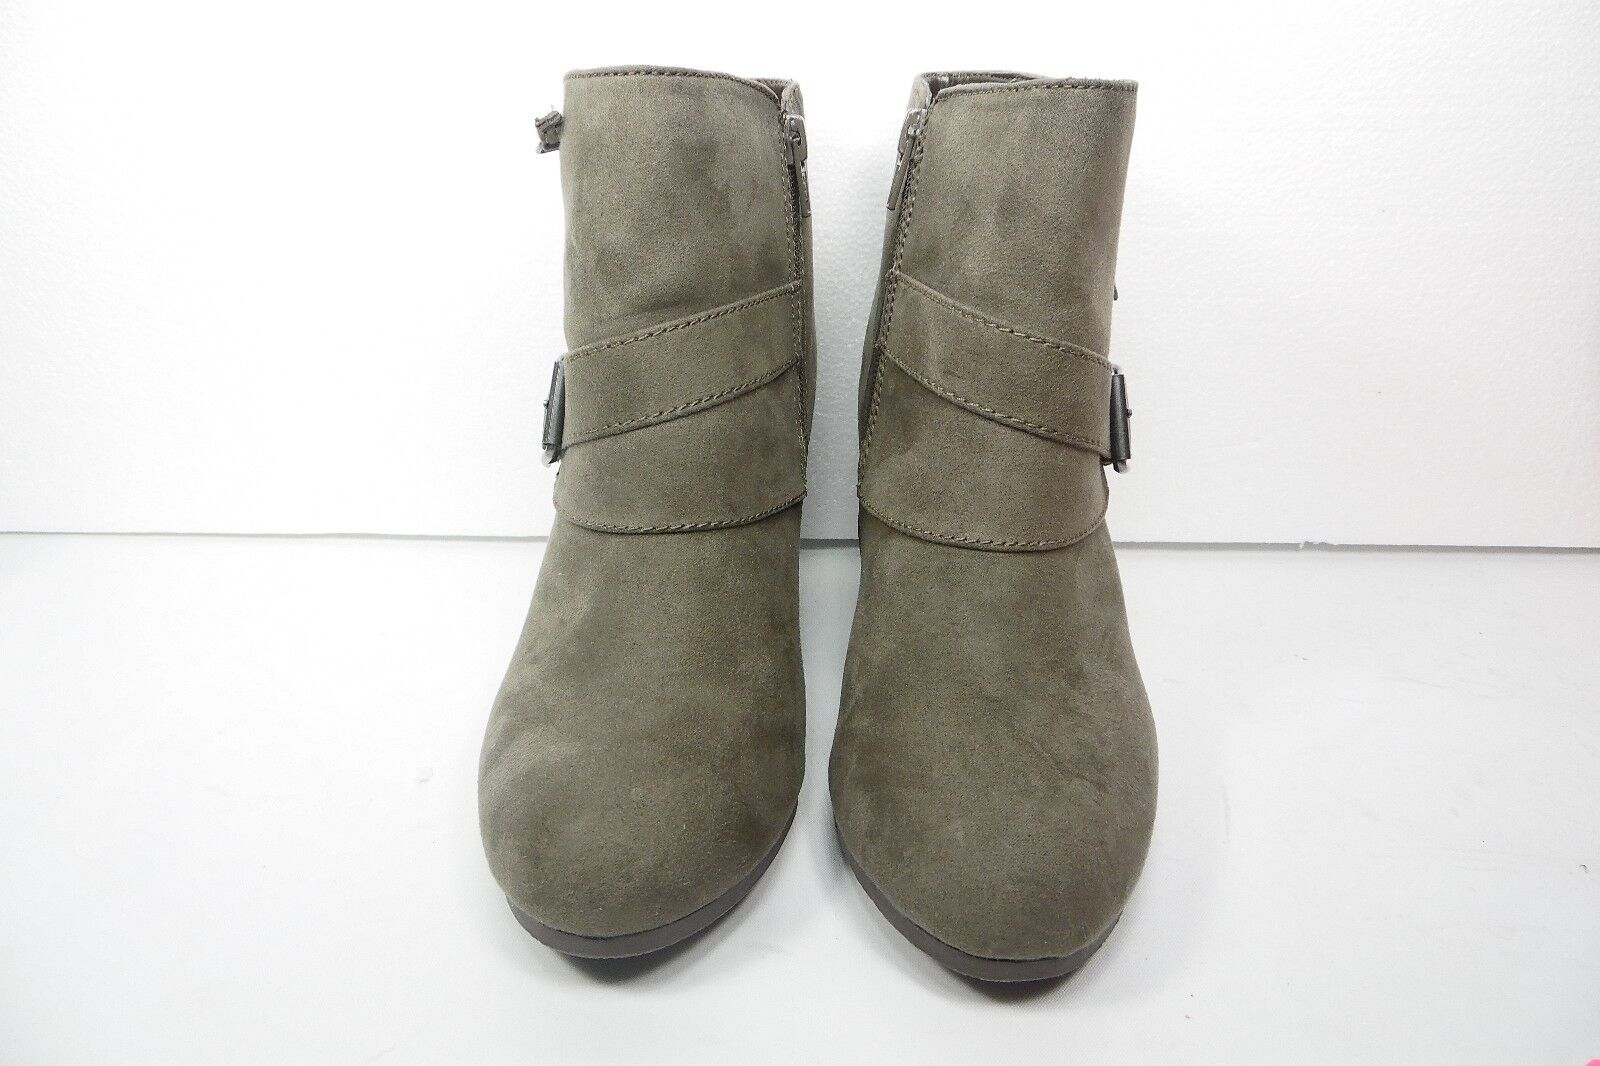 Arizona Lady Womens Wedges Ankle Boots Taupe Size 8M